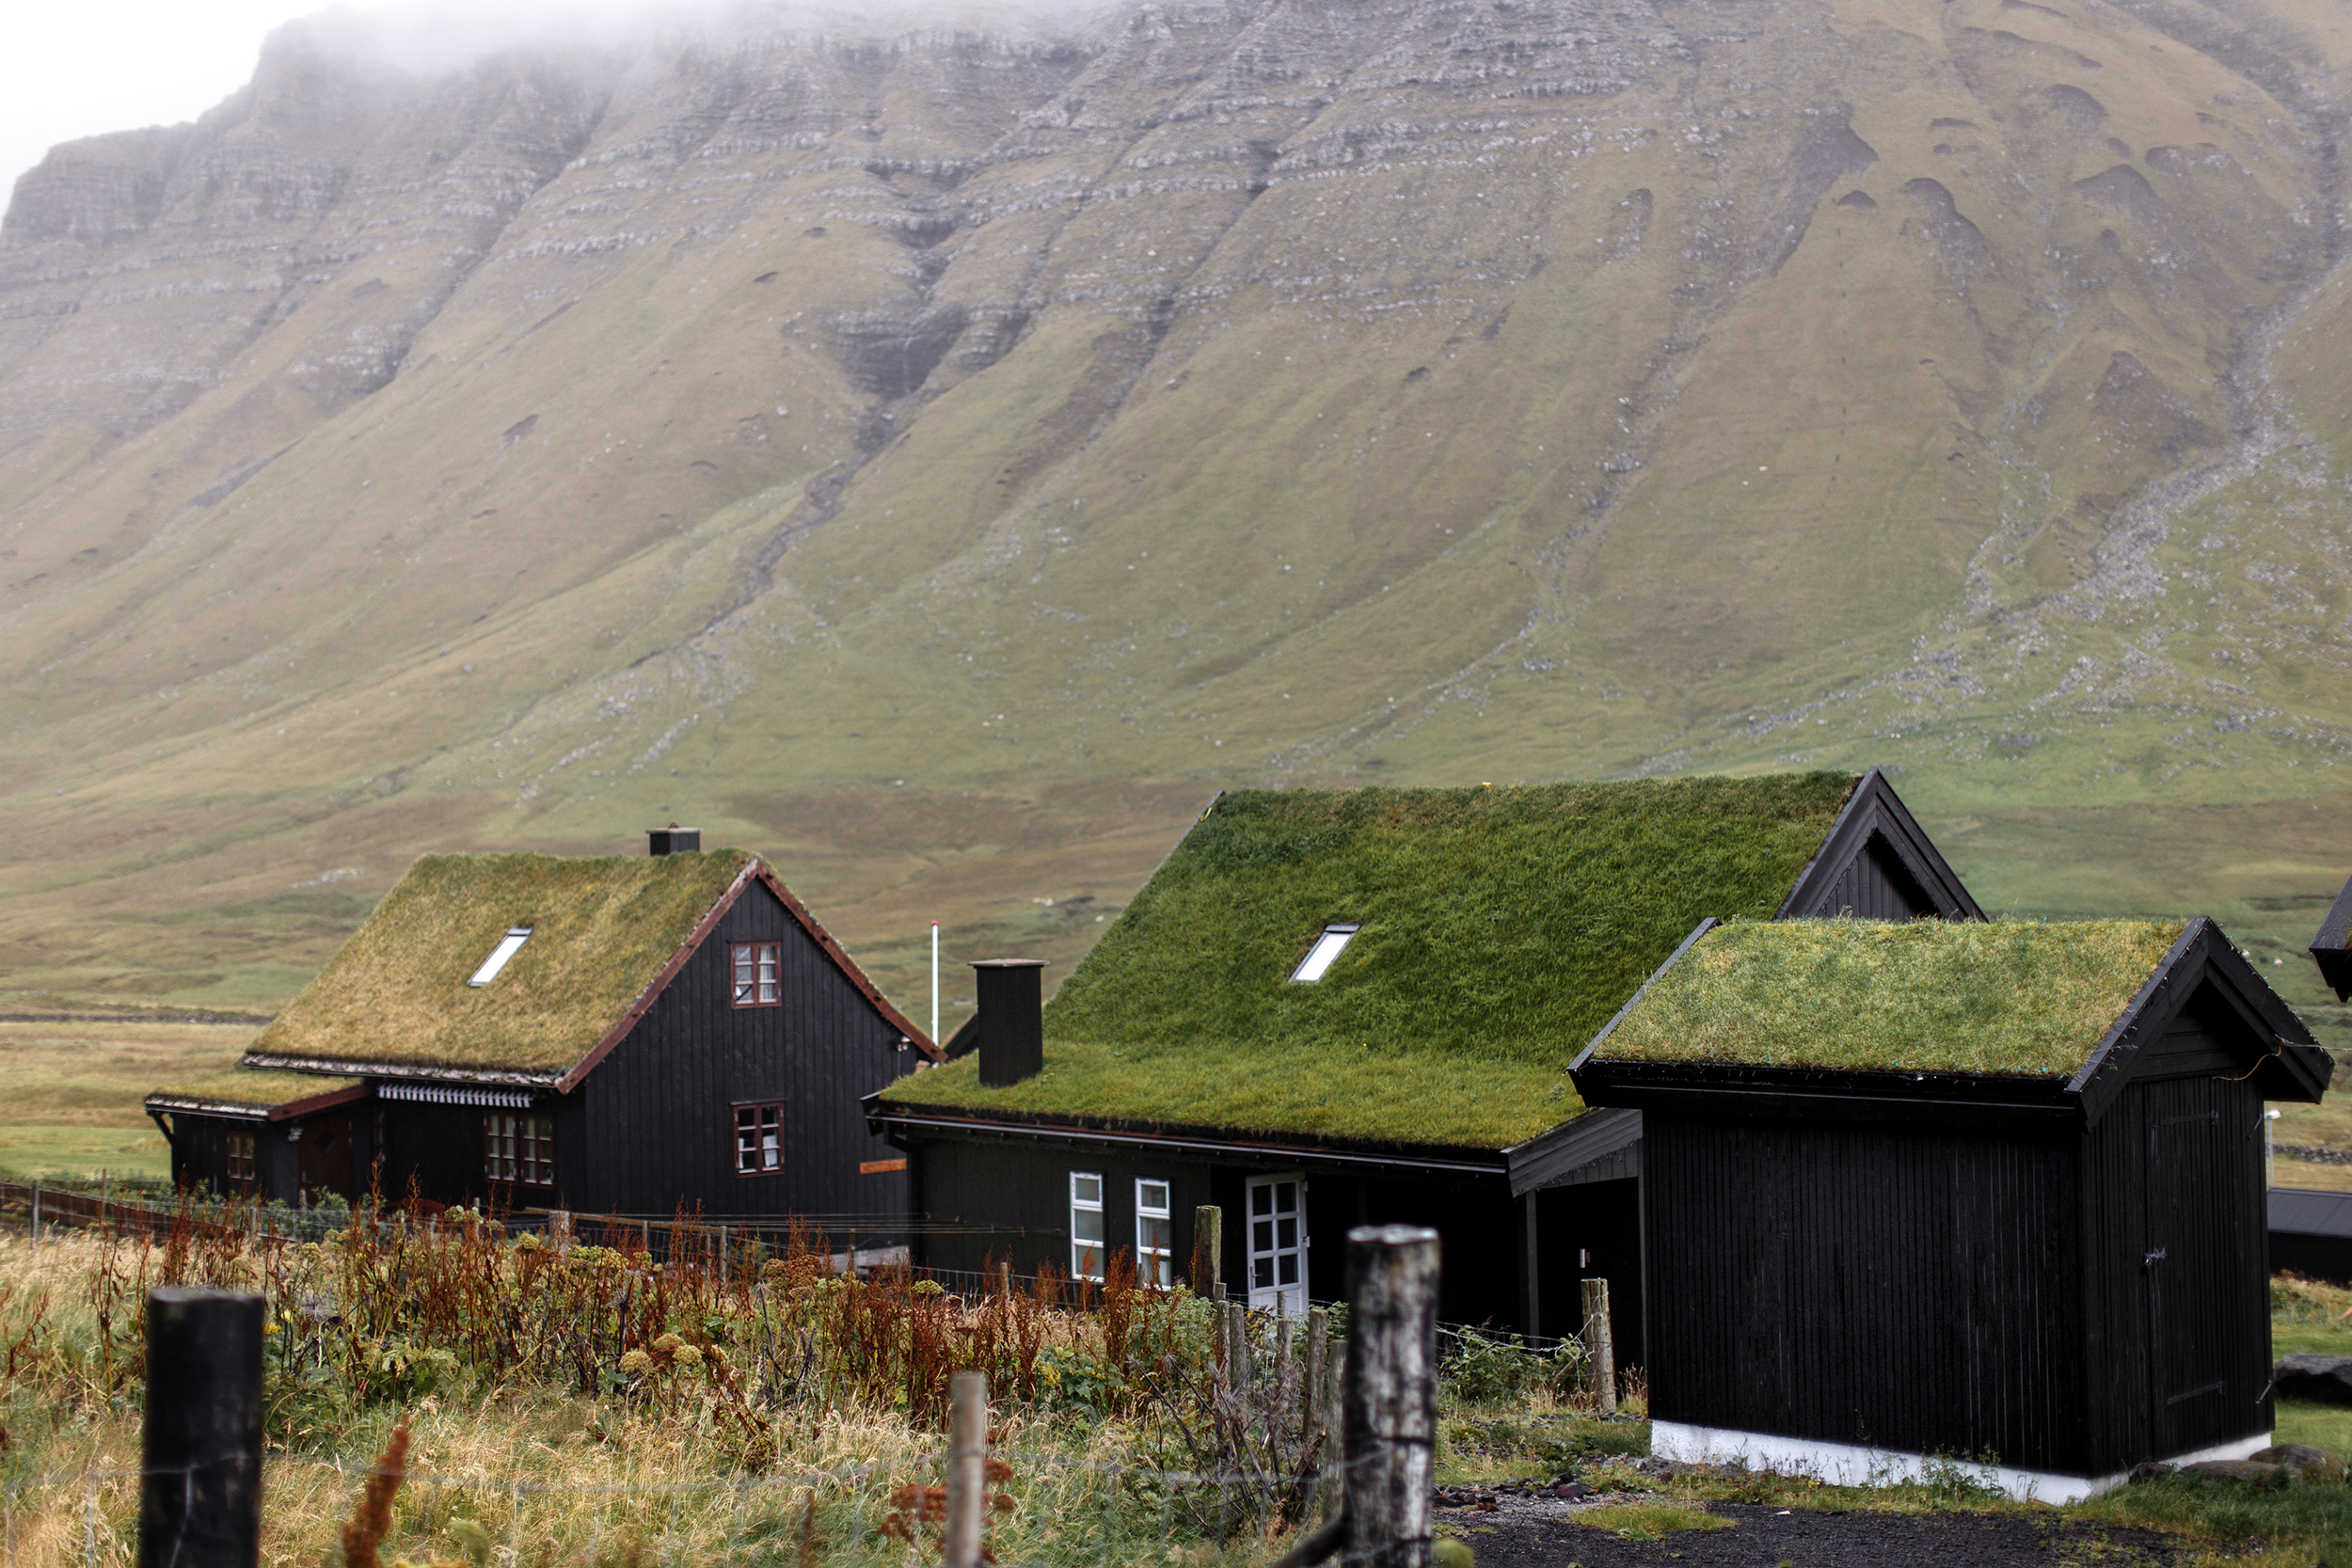 the village of Gásadalur on the island of Vágar in the Faroe islands